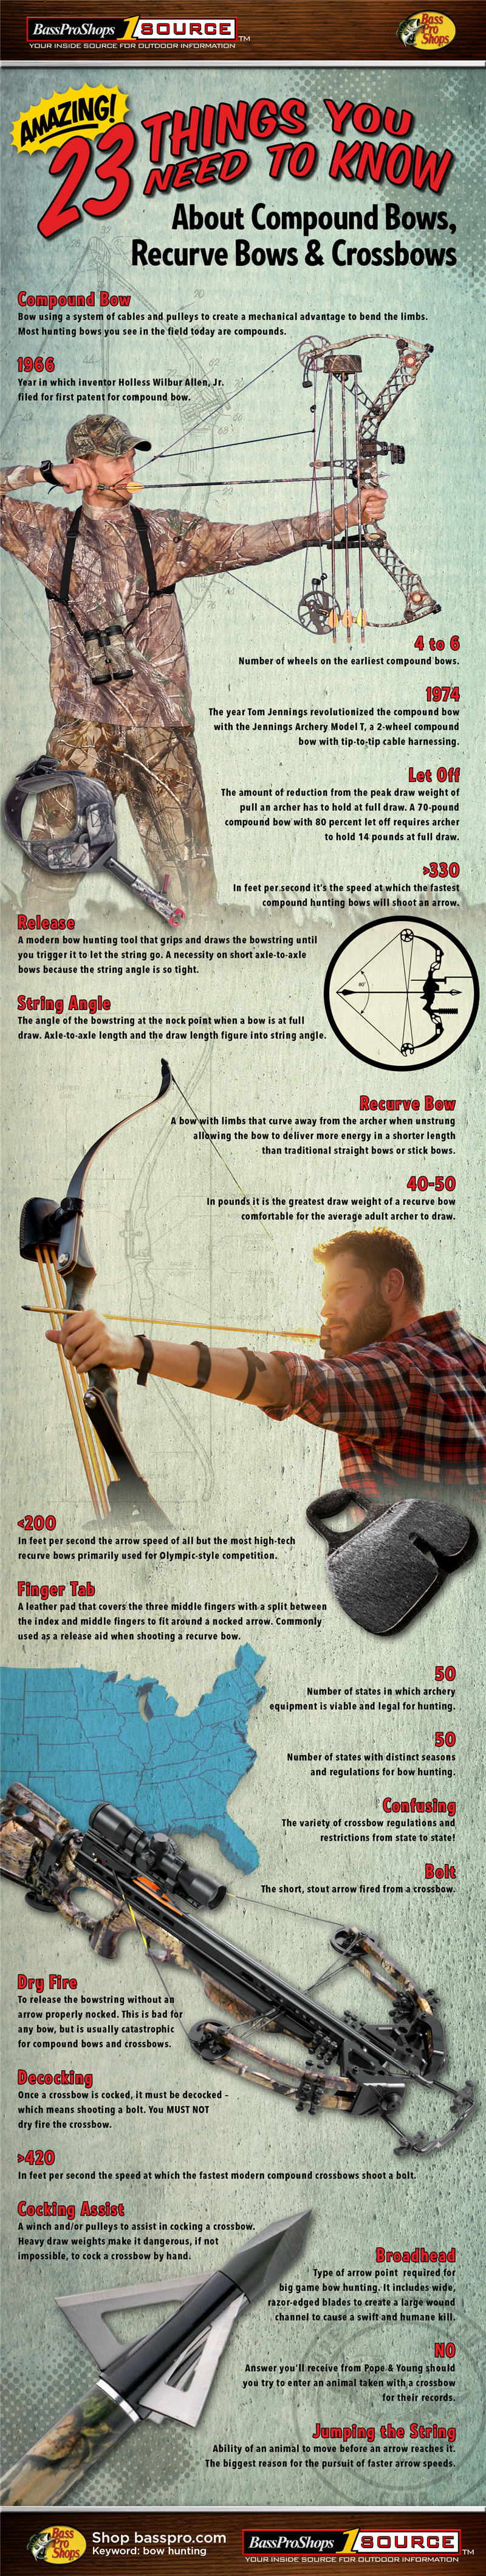 Infographic about compound bows, recurve bows & crossbows